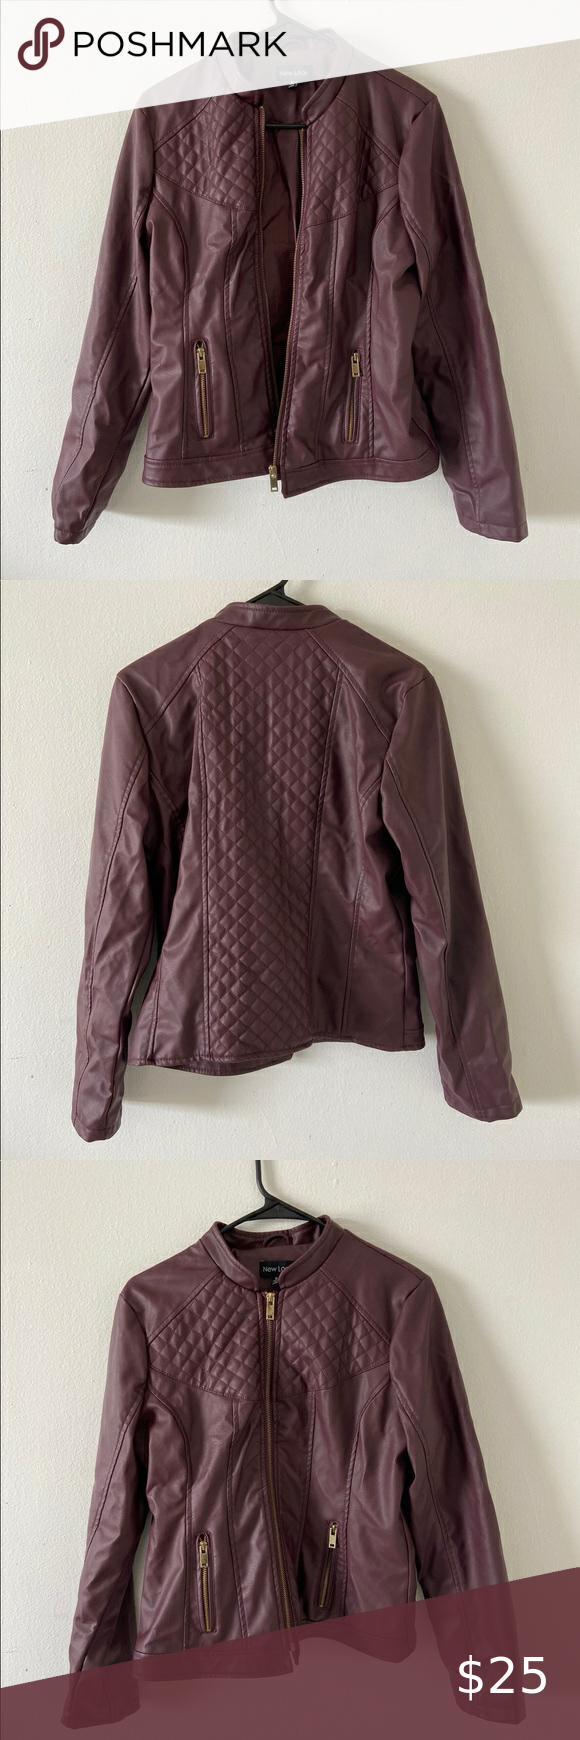 New Look Faux Leather Jacket Leather Jacket New Look Jackets Faux Leather Jackets [ 1740 x 580 Pixel ]